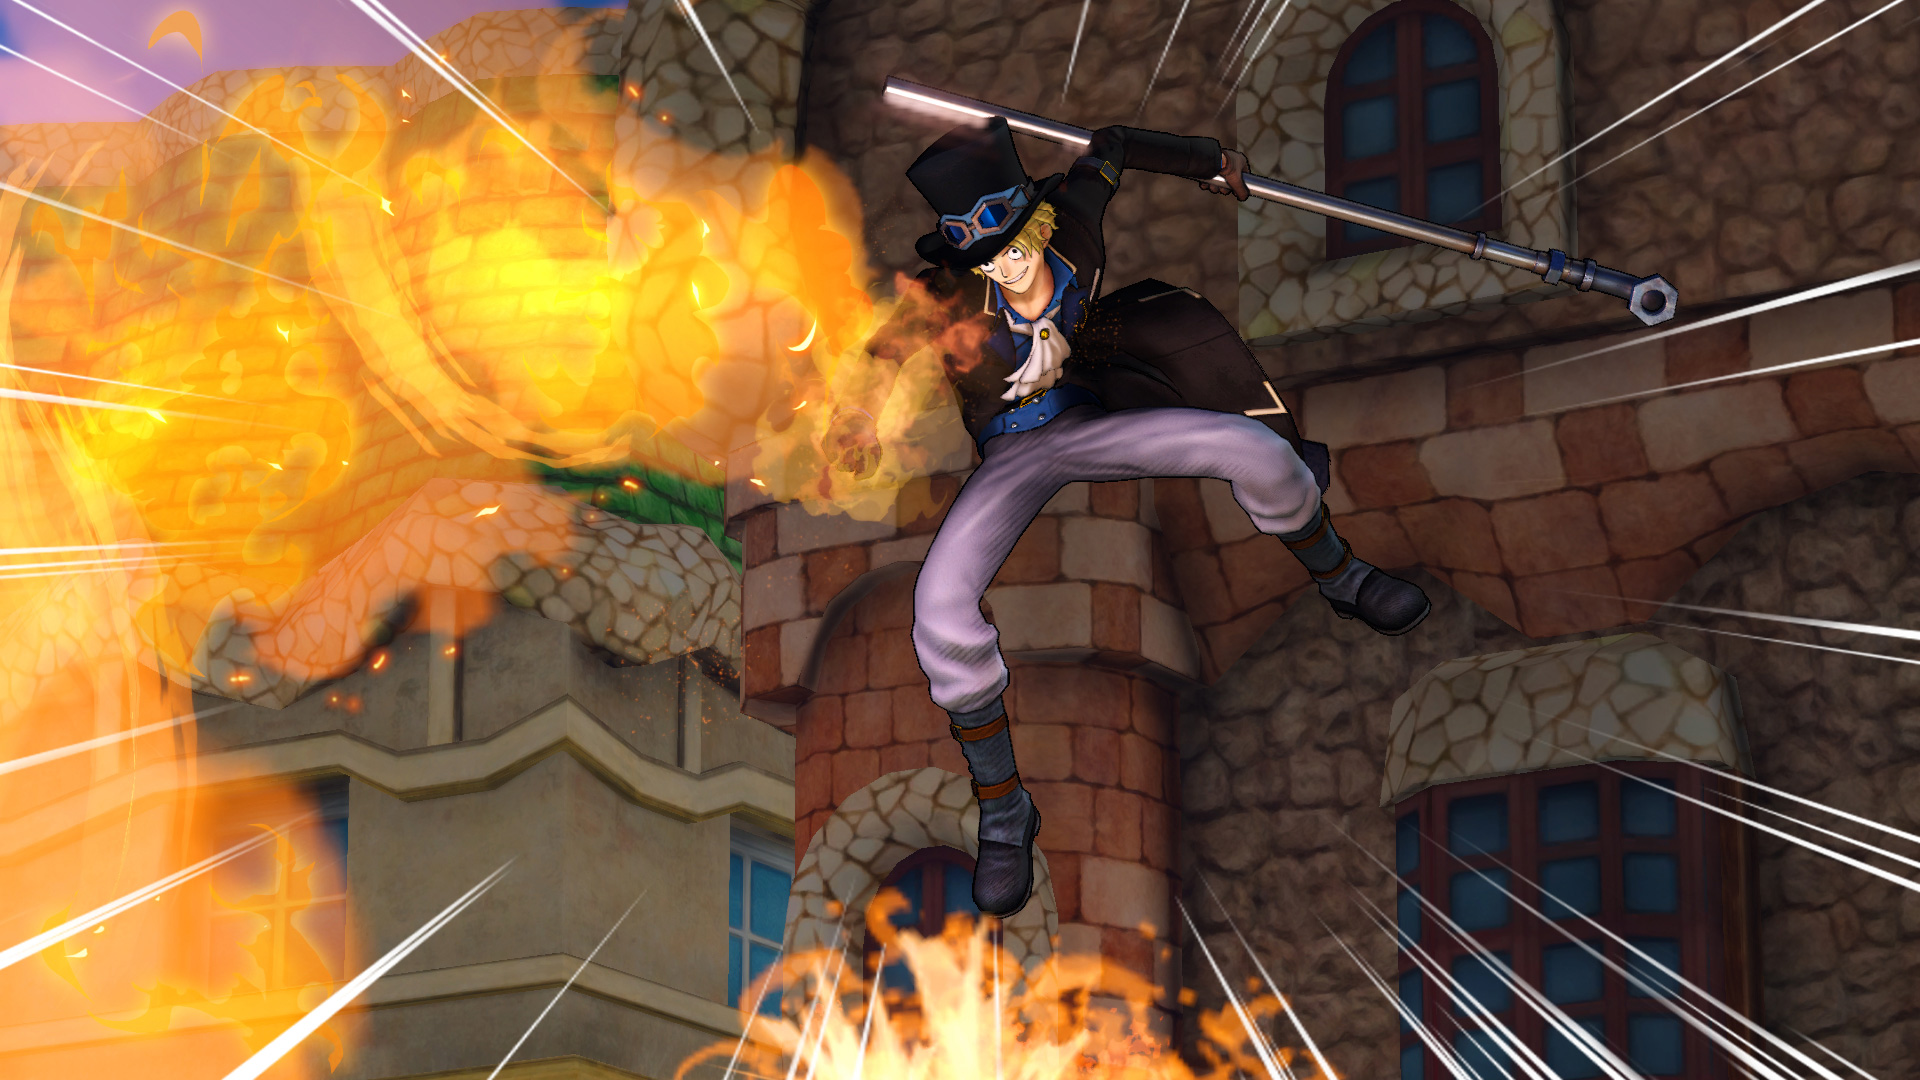 One-Piece-Pirate-Warriors-3-Screenshot-3